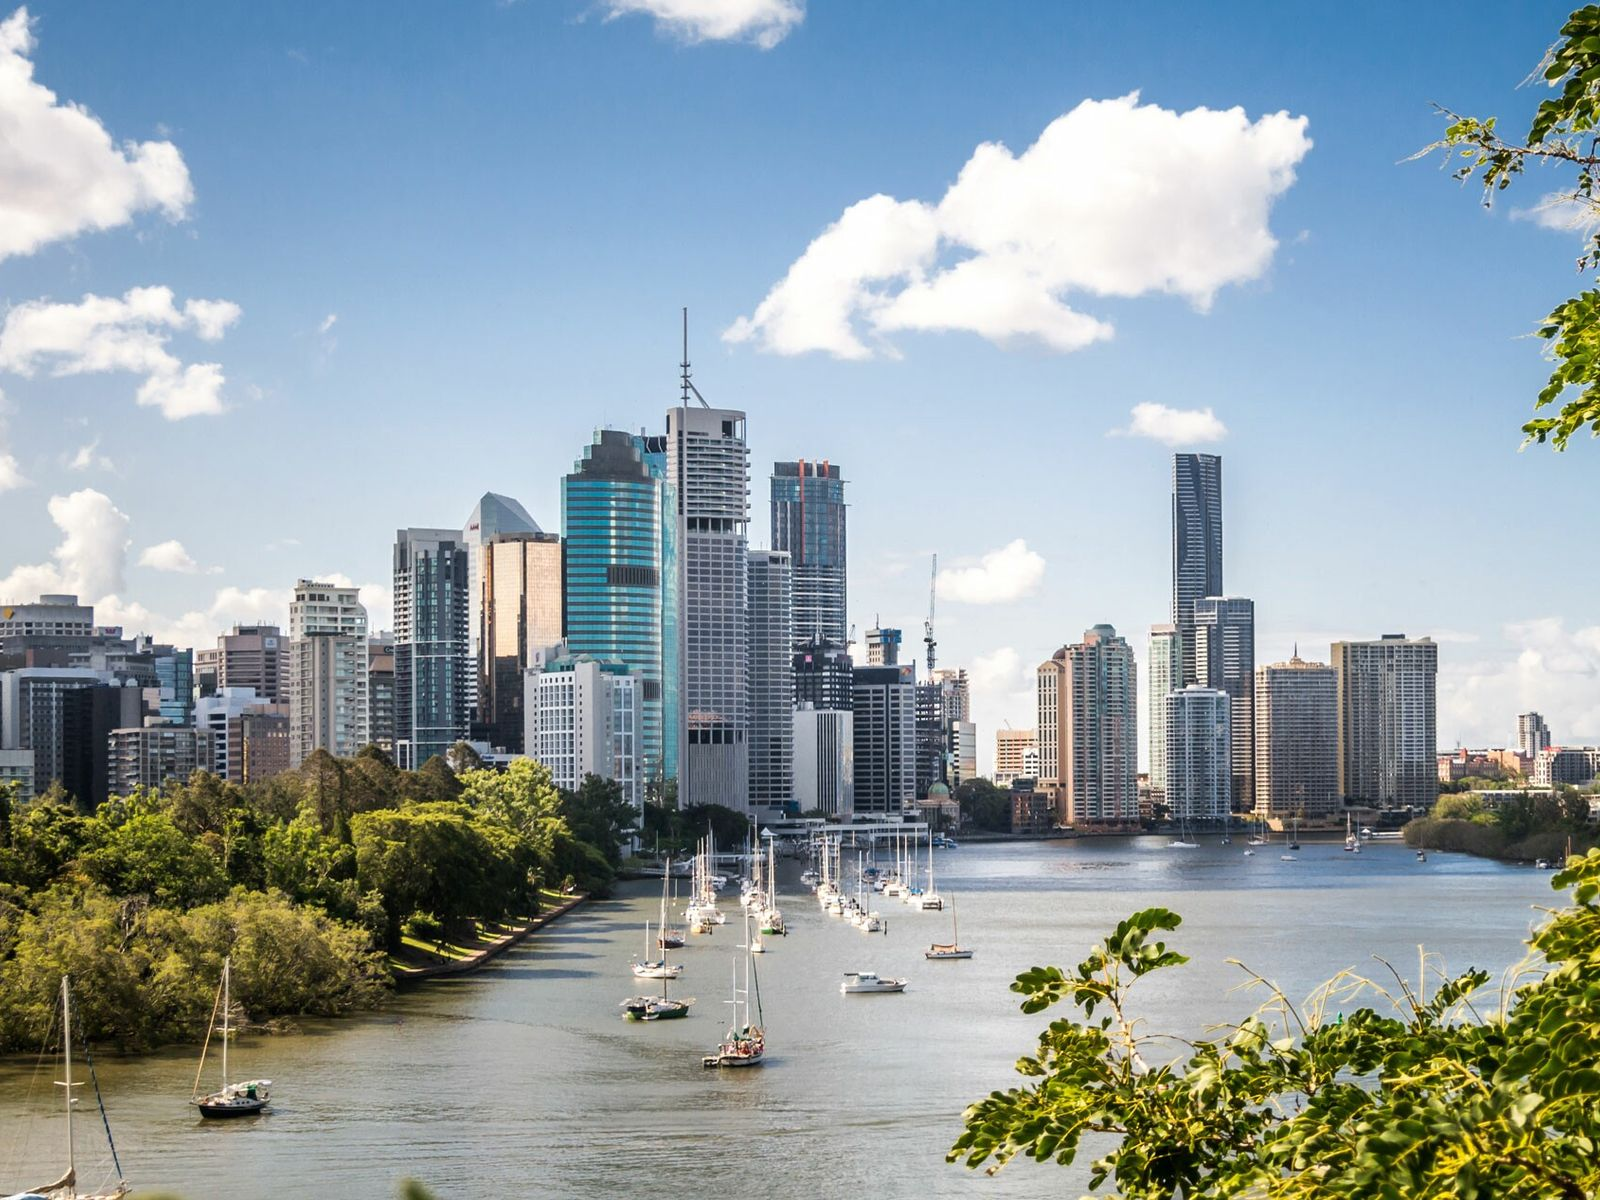 With Brisbane's warm, sub-tropical climate and incredible riverside views, visitors should jump aboard one of the ...